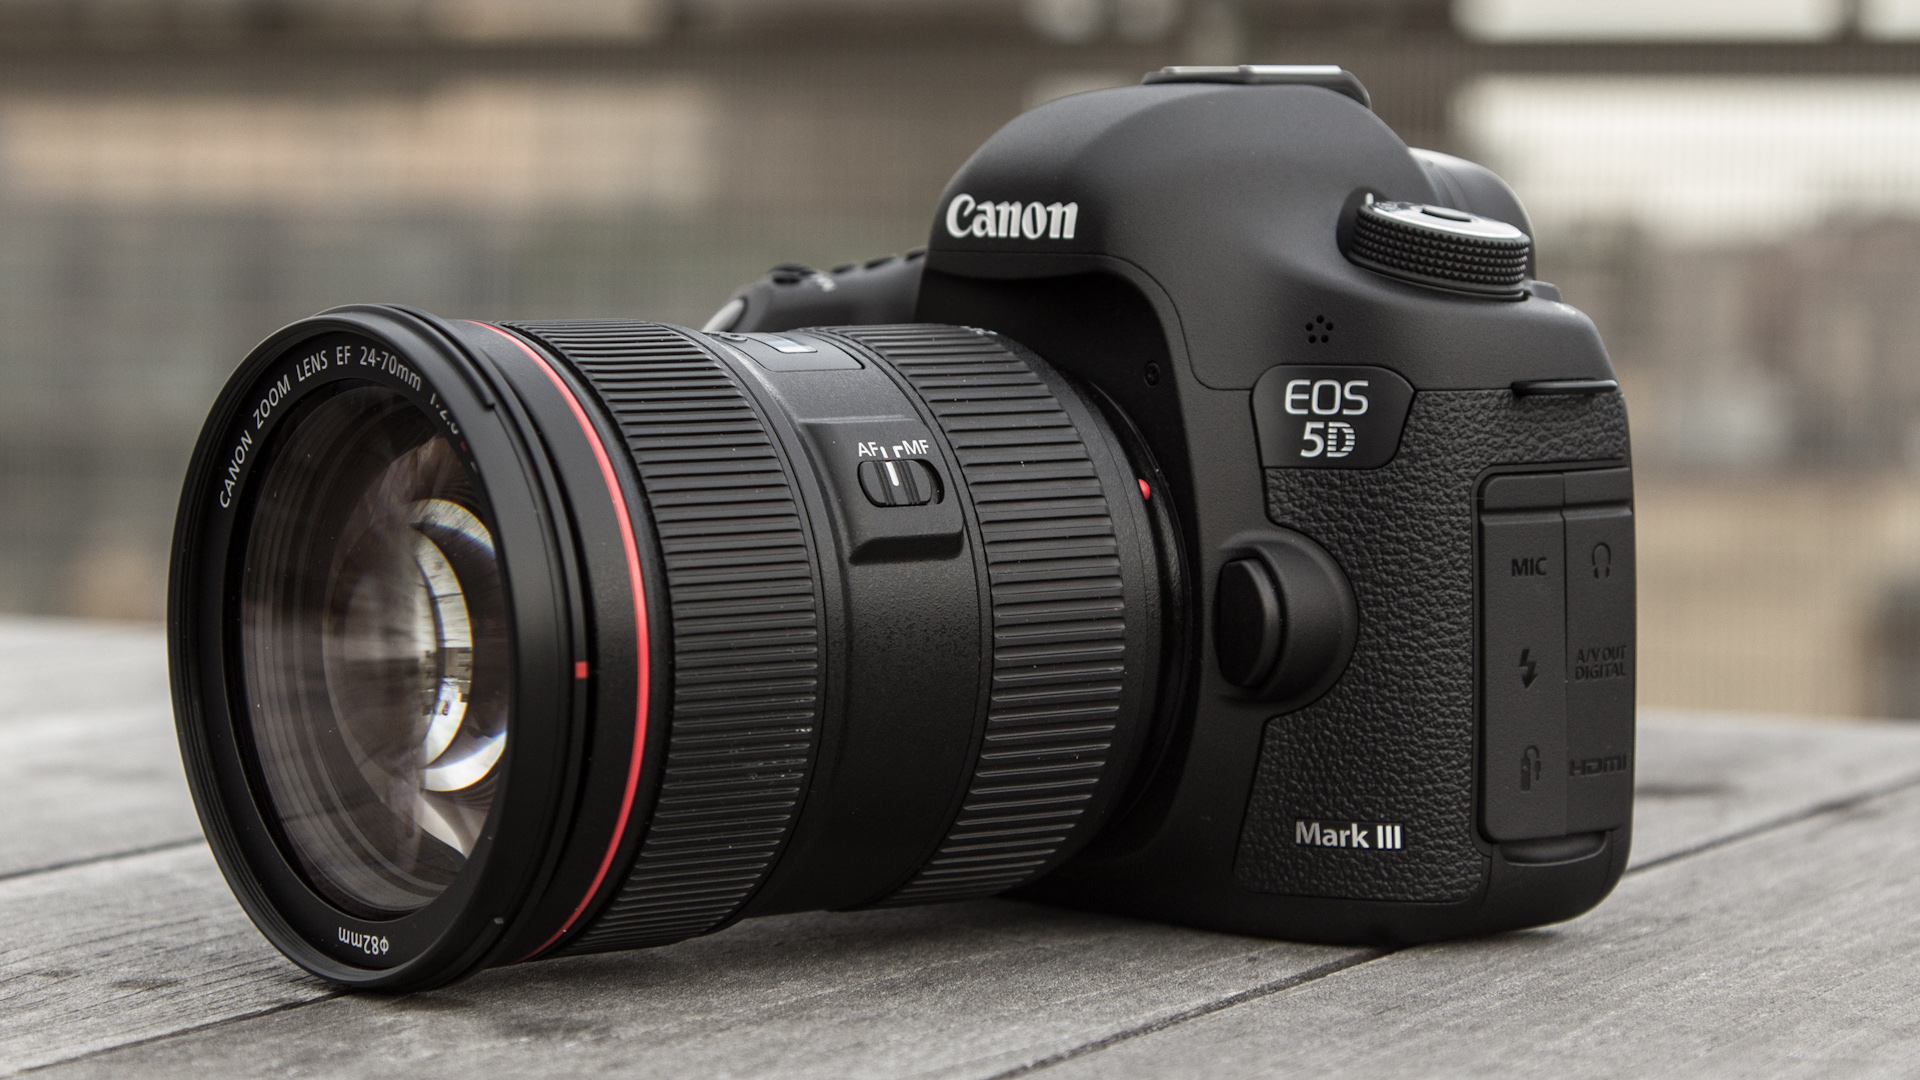 canon eos 5d mark iii video chompin darkness slaying